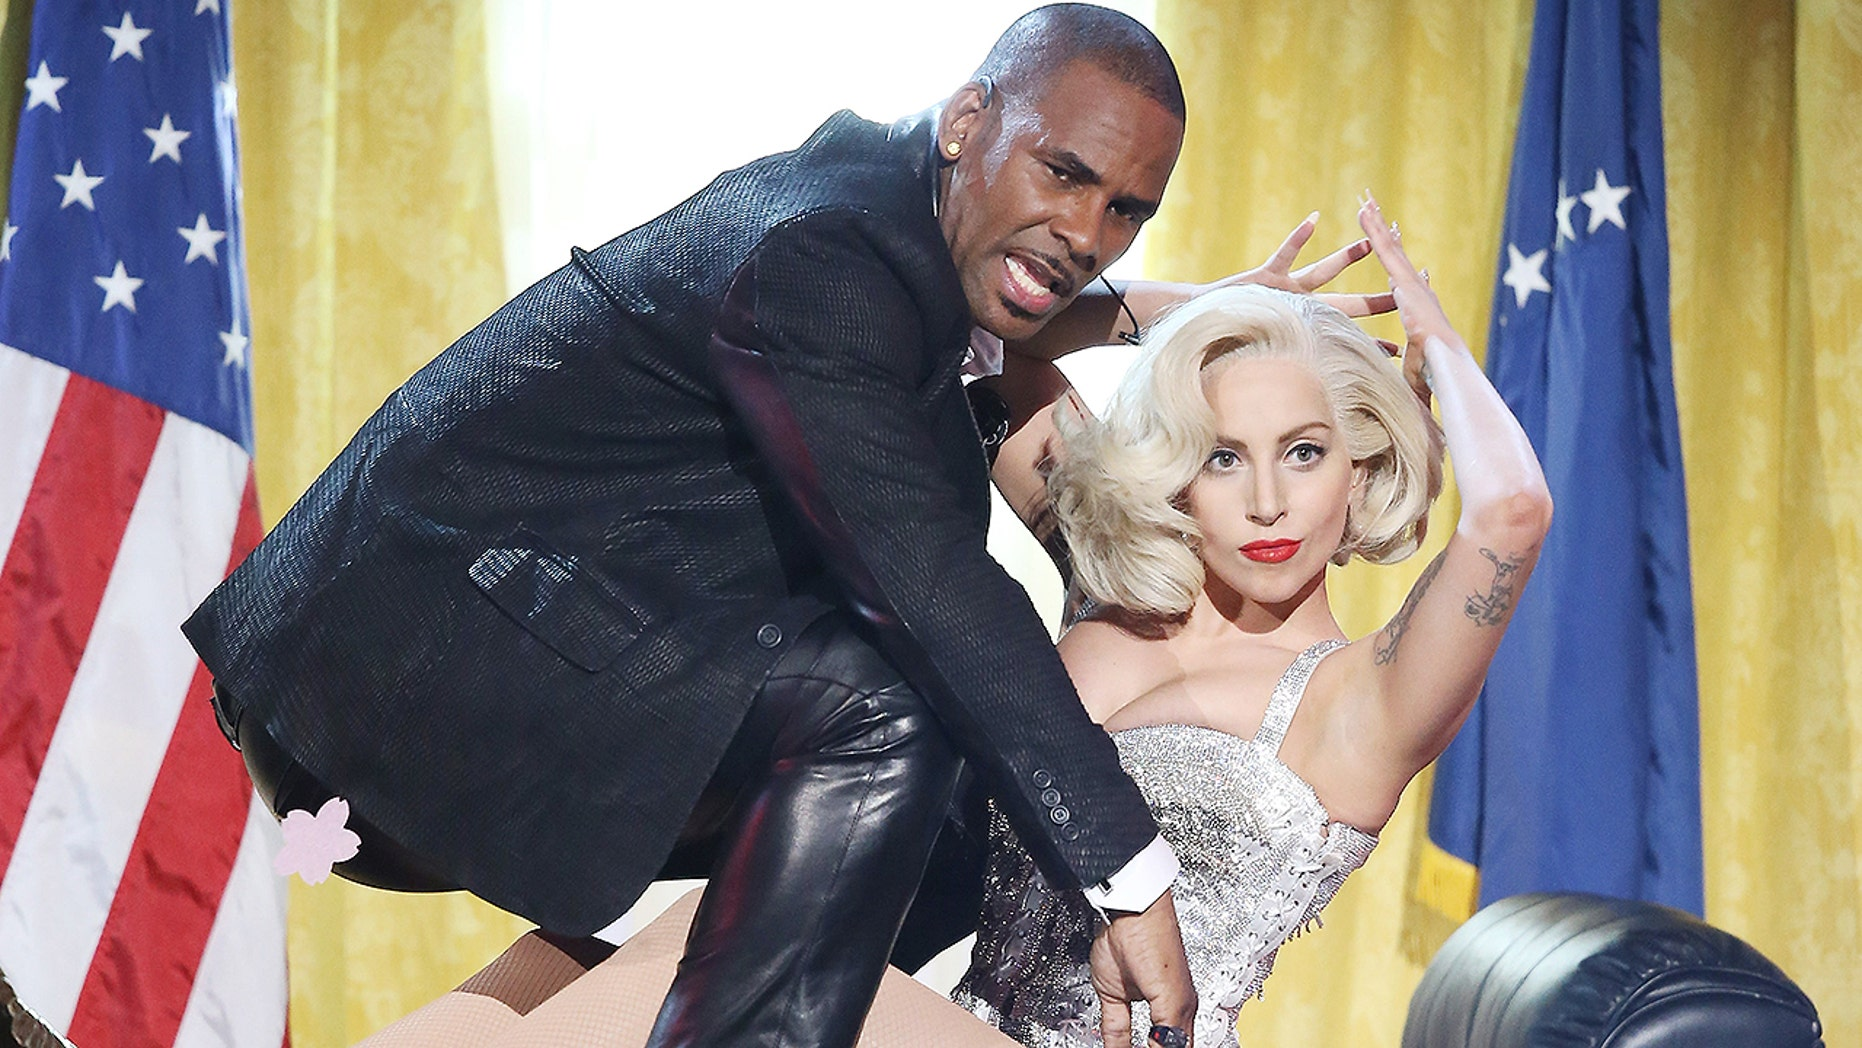 """R. Kelly and Lady Gaga perform """"Do What U Want"""" at the American Music Awards in November 2013."""